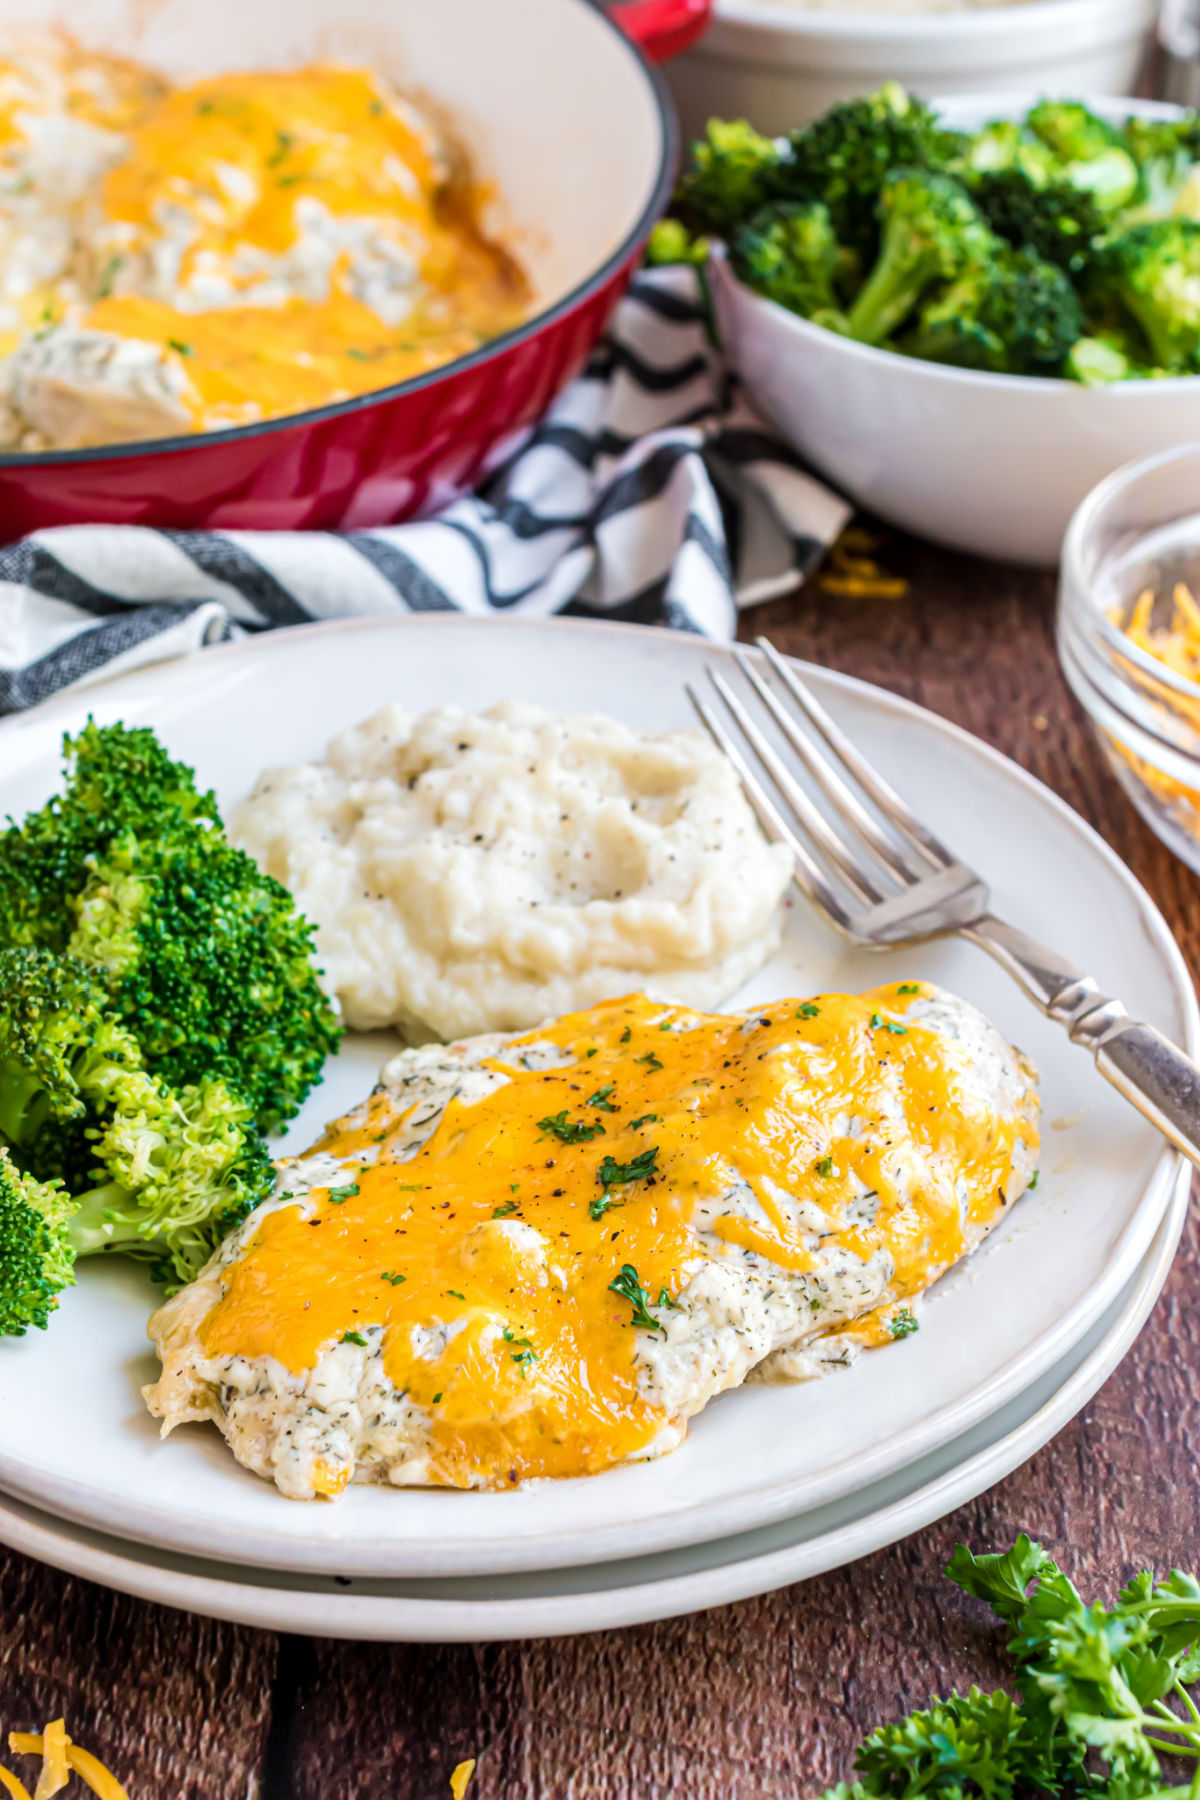 Baked chicken with low carb ranch dressing and cheese on a plate served with broccoli and mashed cauliflower.